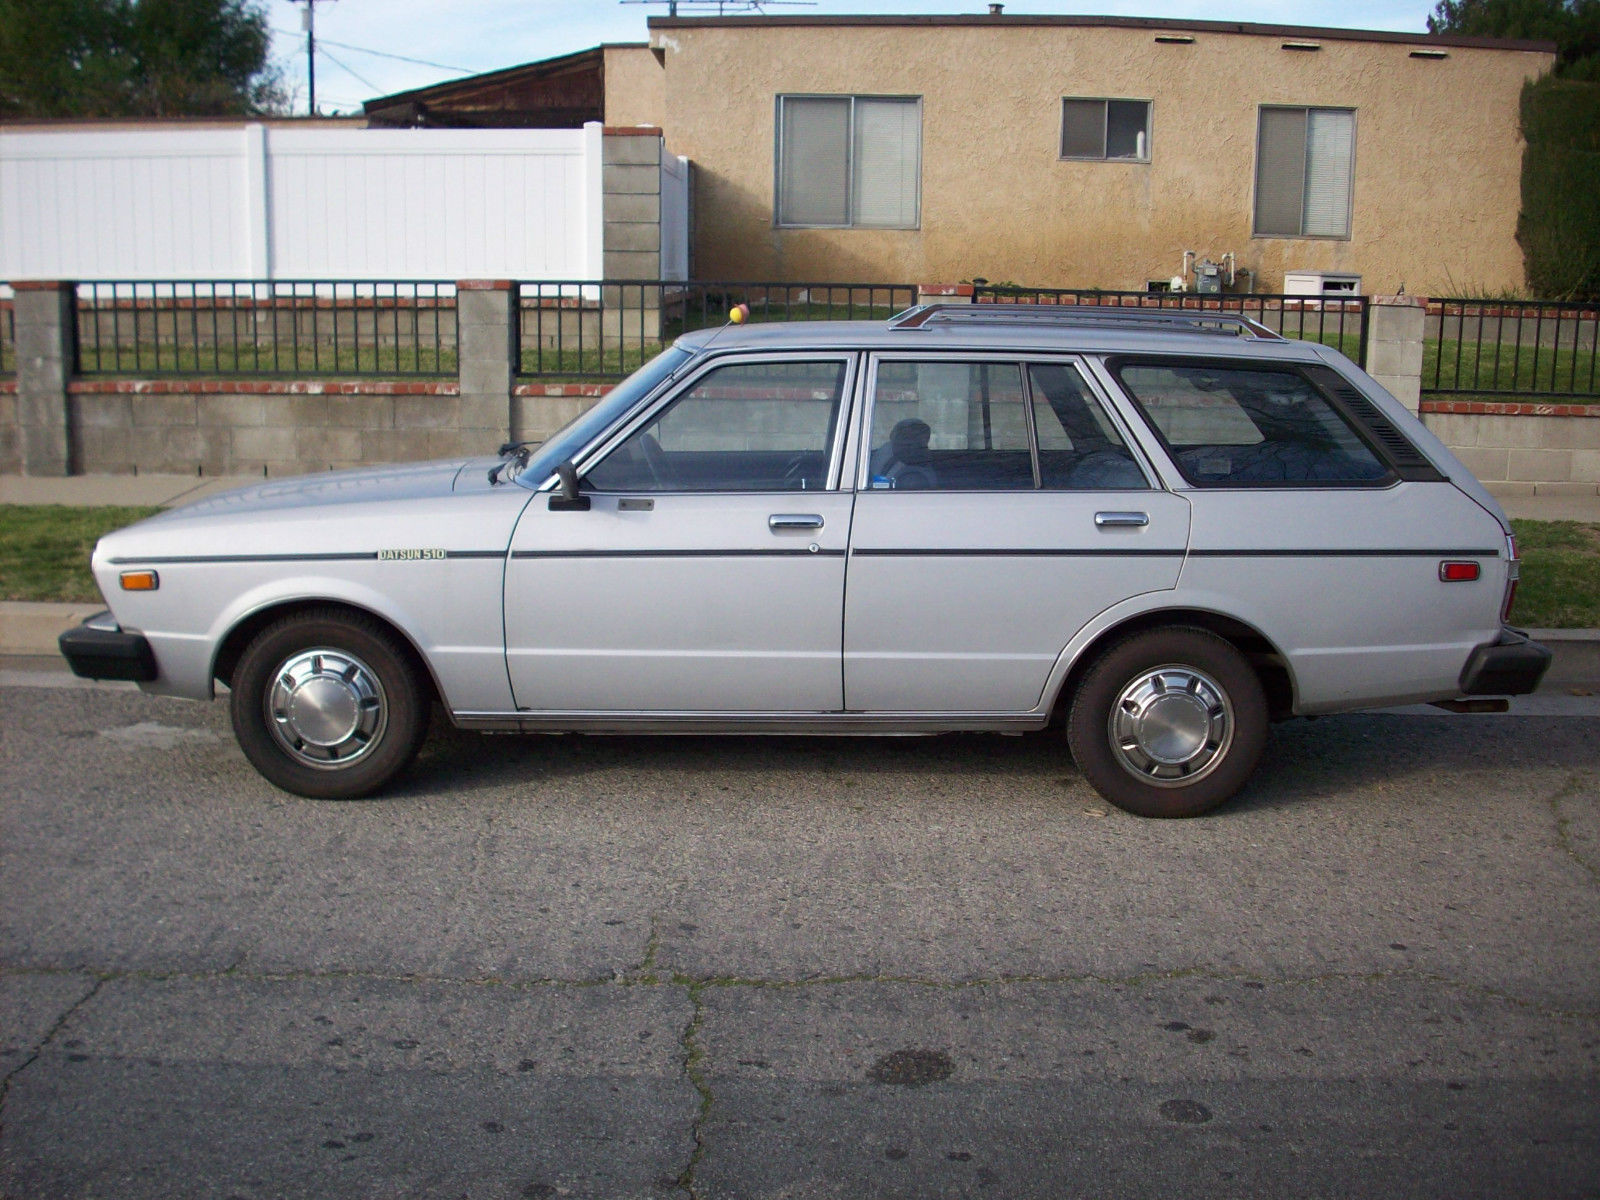 1980 Datsun 510 Wagon All Original 69k Miles Really Nice